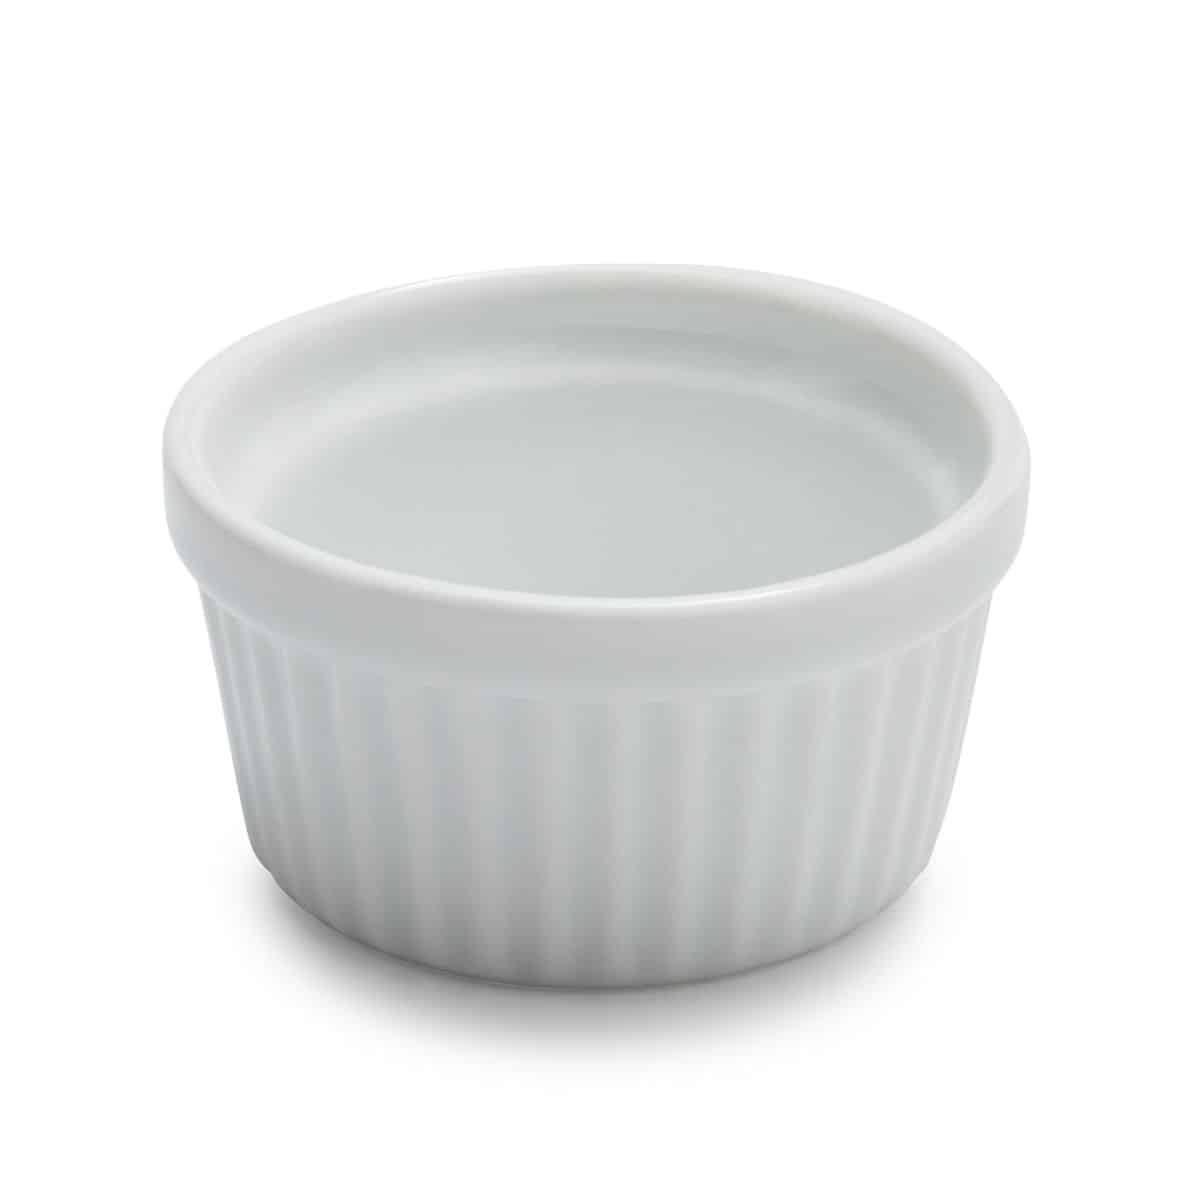 Sur La Table Round Ramekin